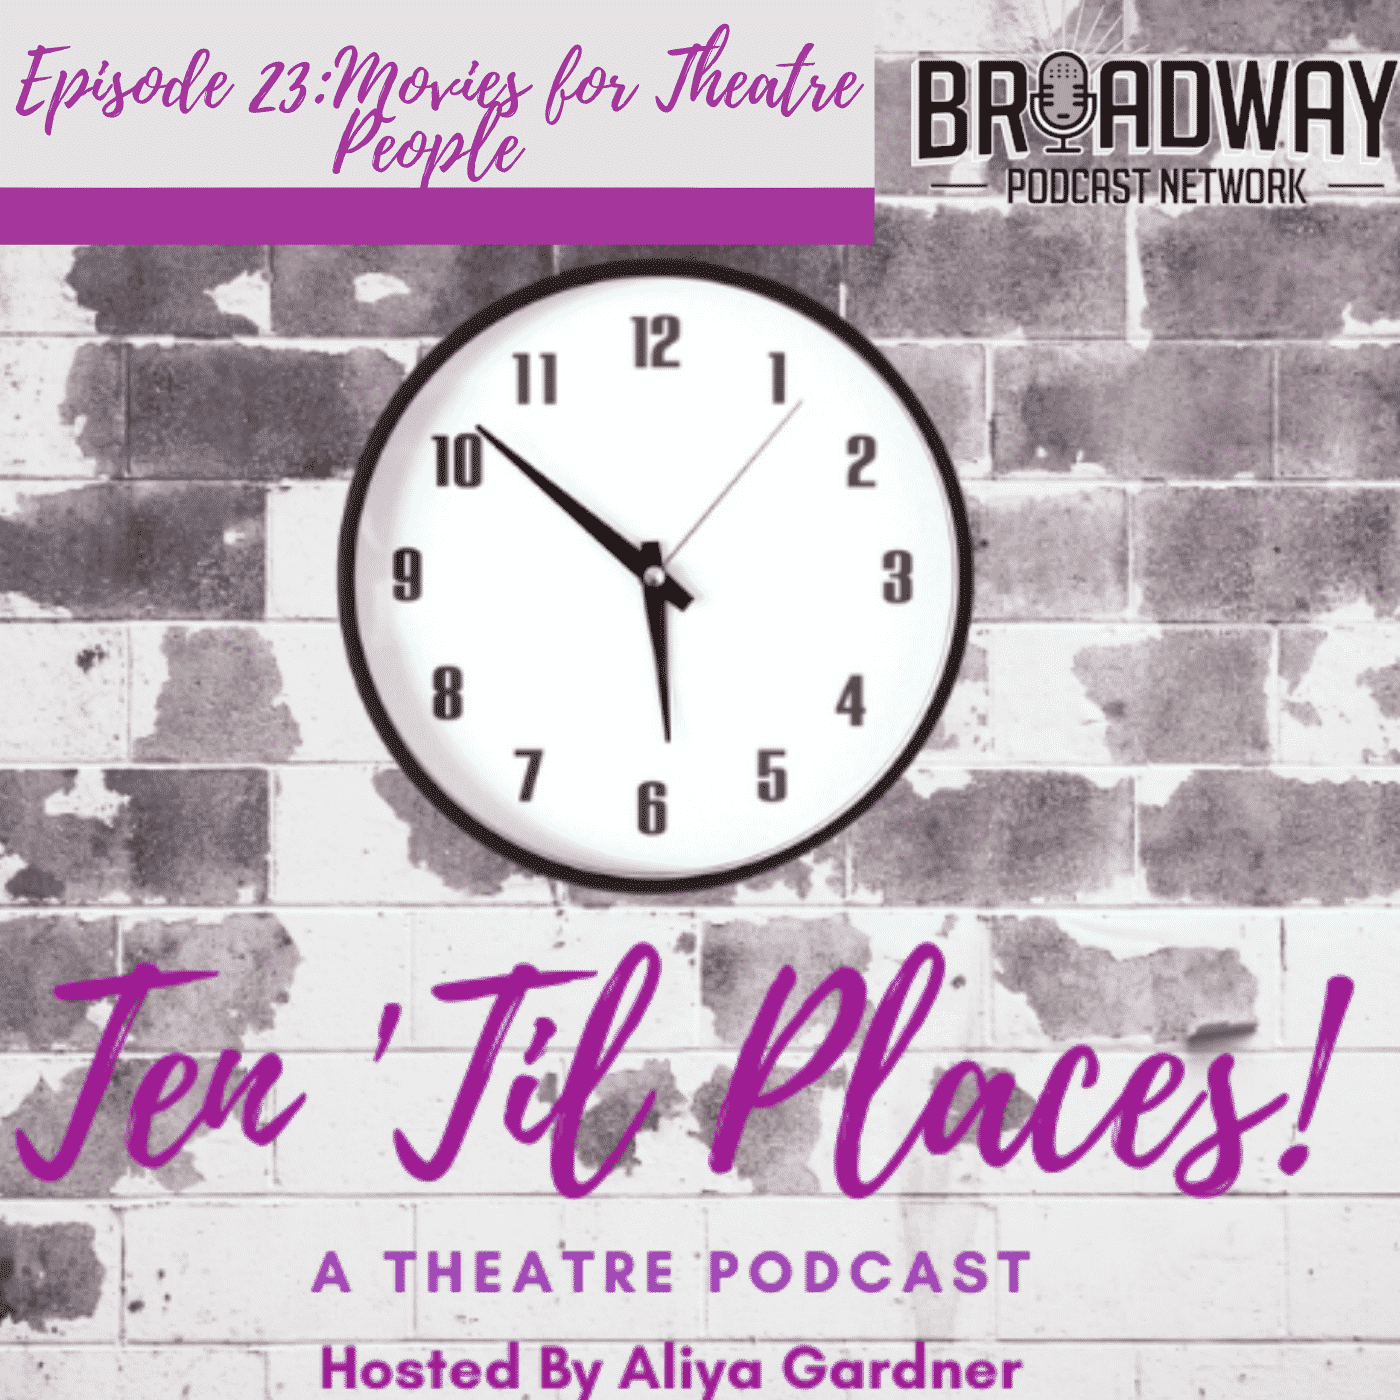 Episode 23: Movies for Theatre People